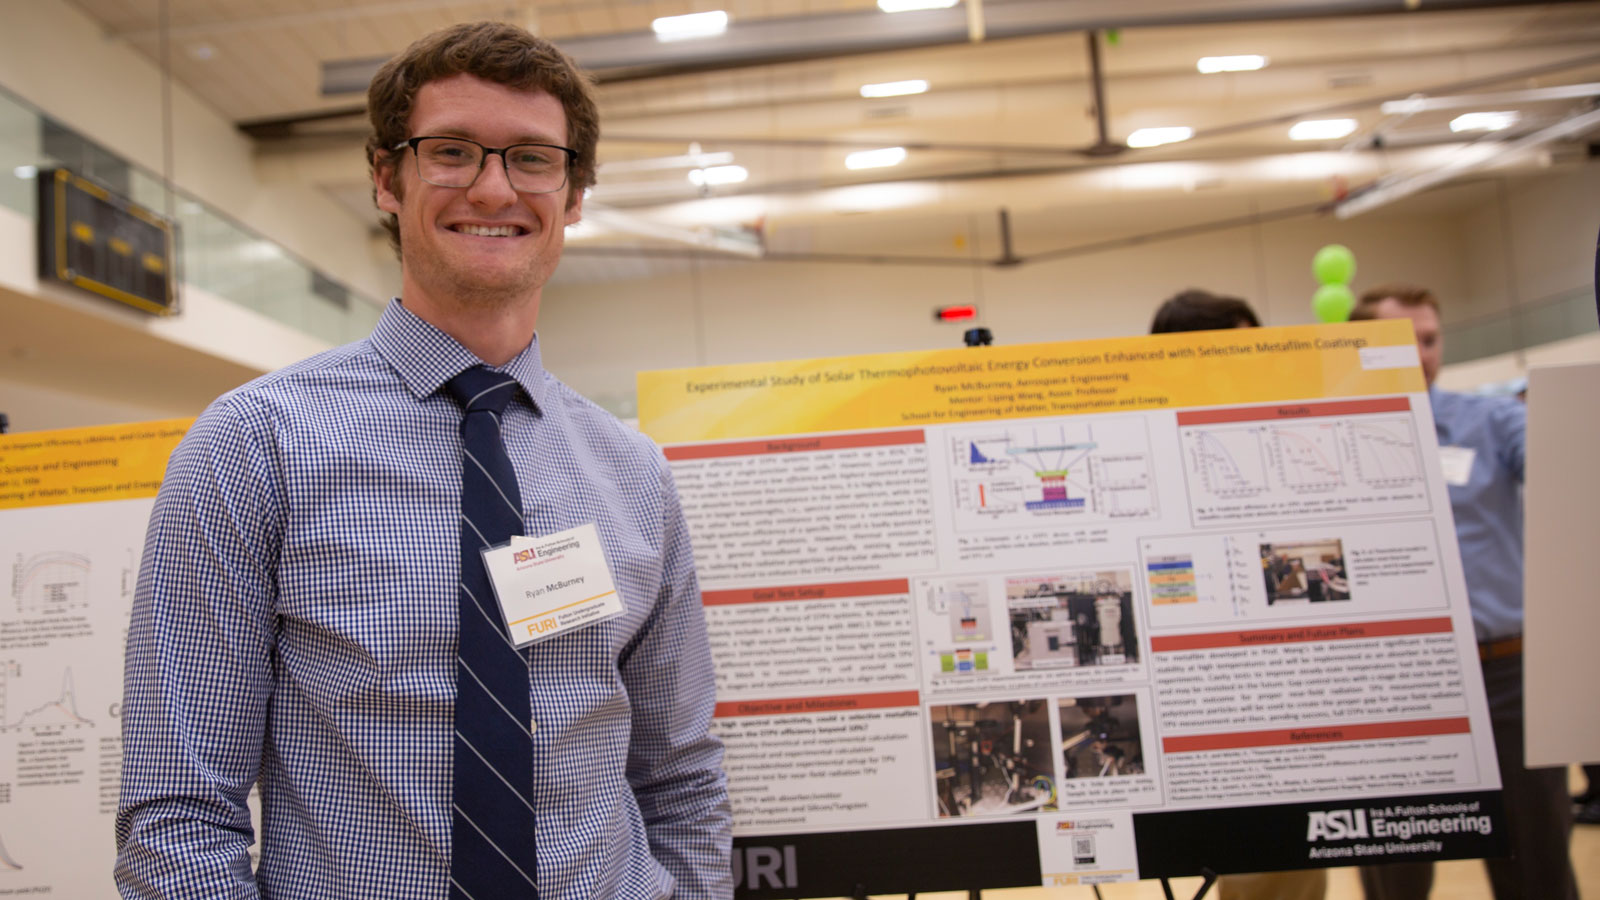 A student poses in front of a research poster.